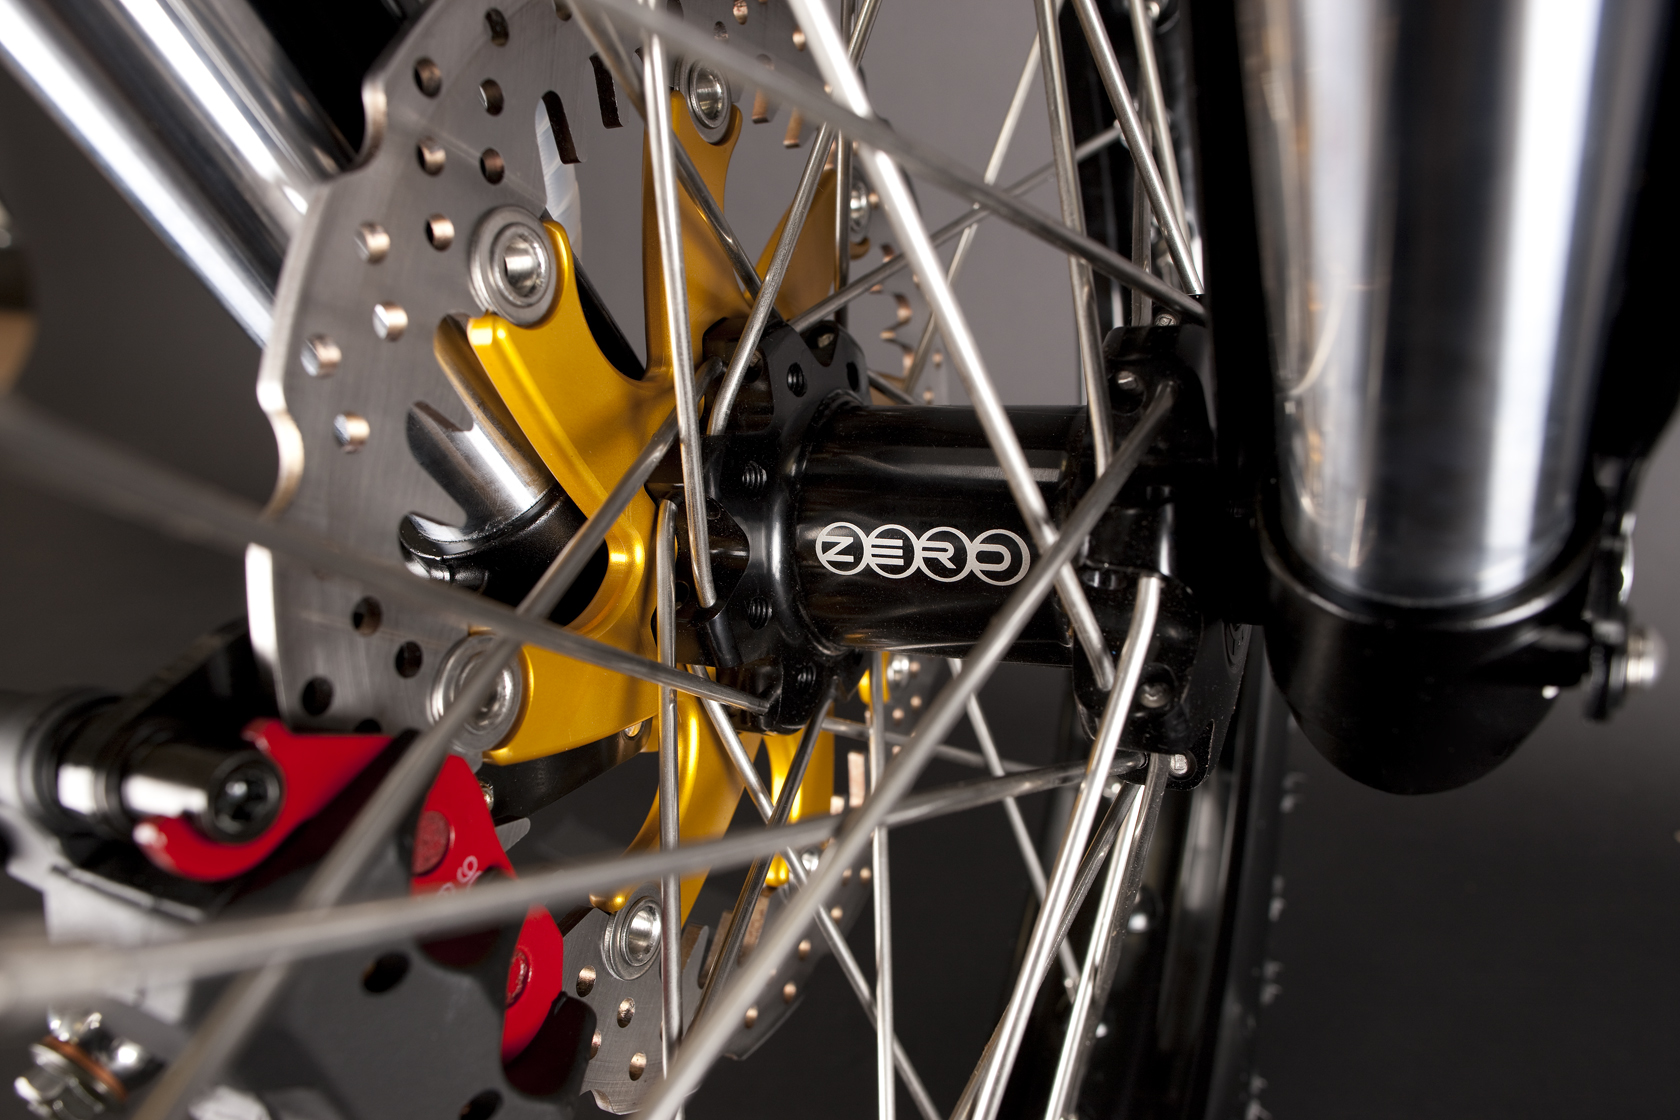 2010 Zero DS Electric Motorcycle: Front Tire